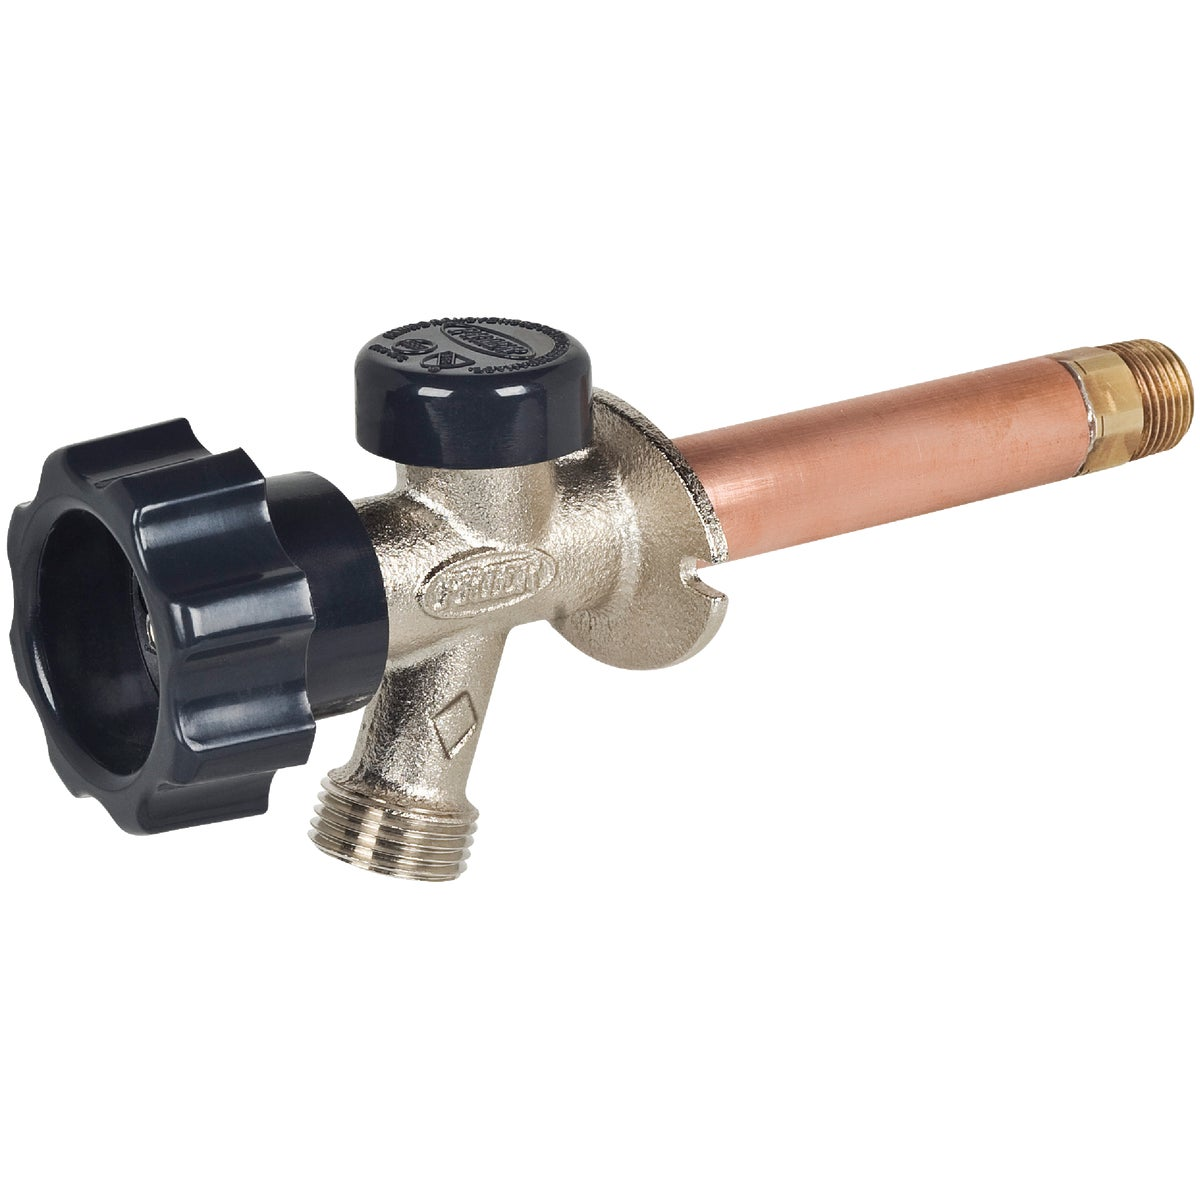 "10"" WALL HYDRANT - 478-10 by Prier Products"